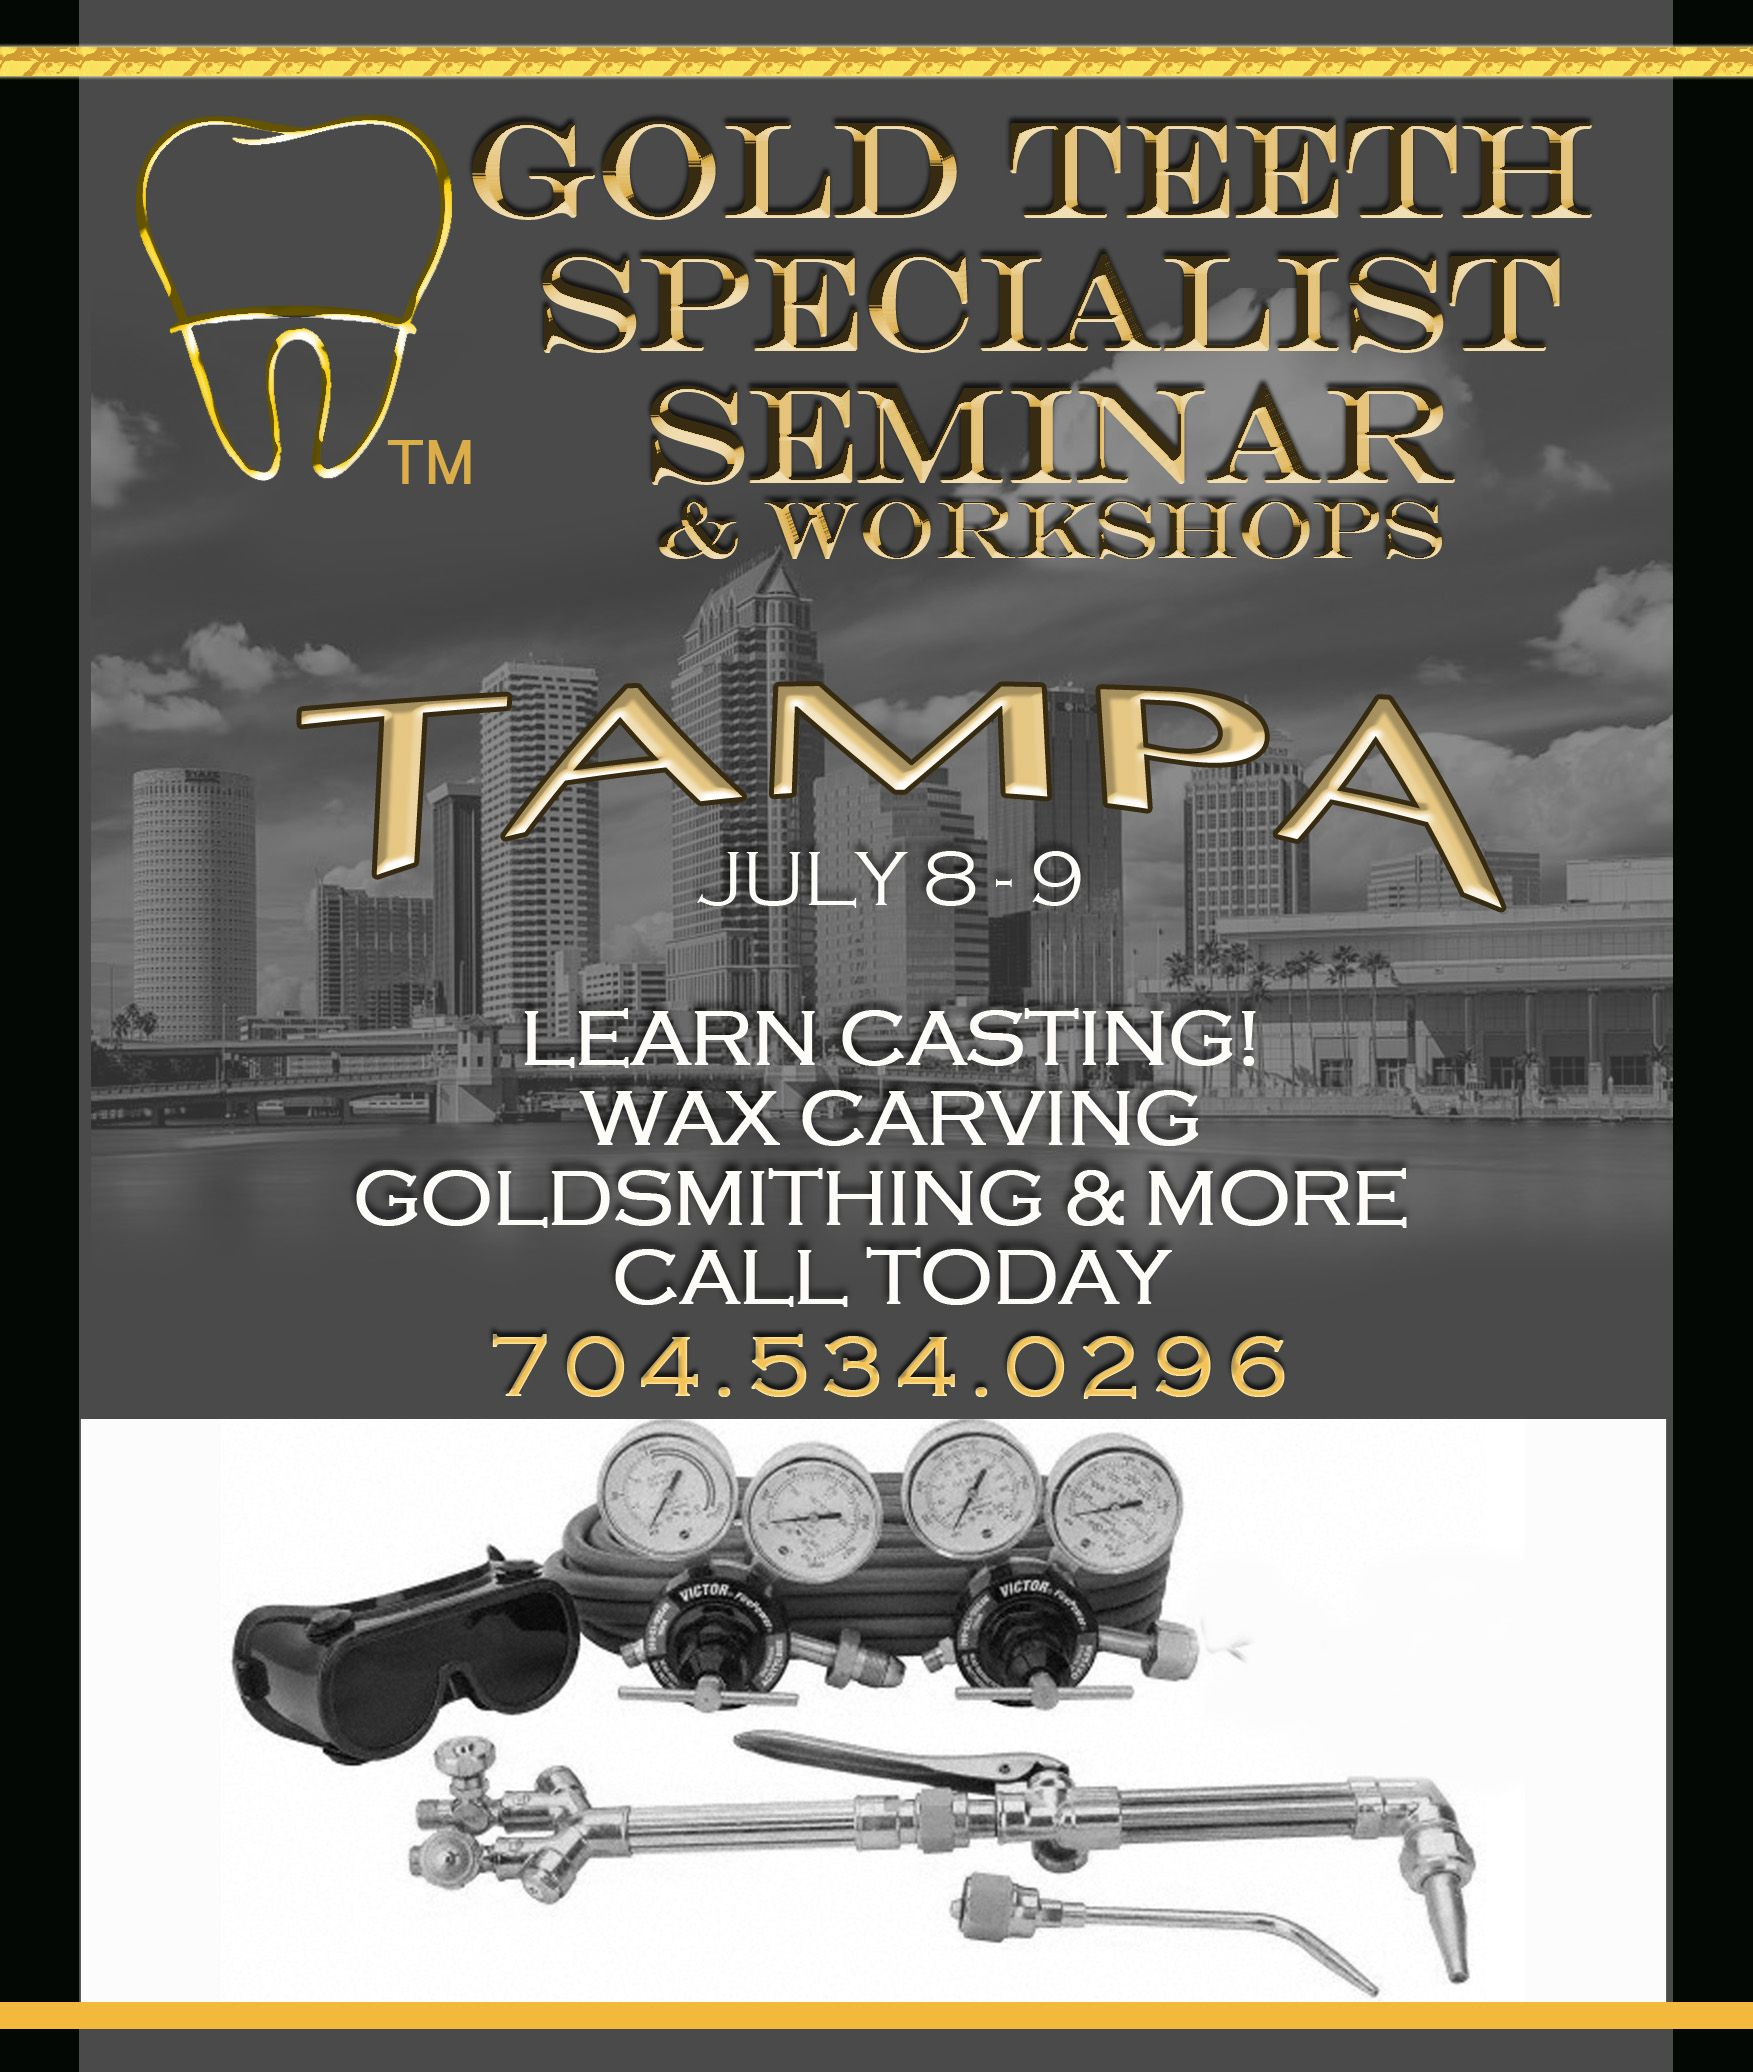 Siiminar Flyer Tampa Our Next Seminar Is In Florida And We Hope To See New And Old Faces If You Want More I Old Faces Grillz Wax Carving